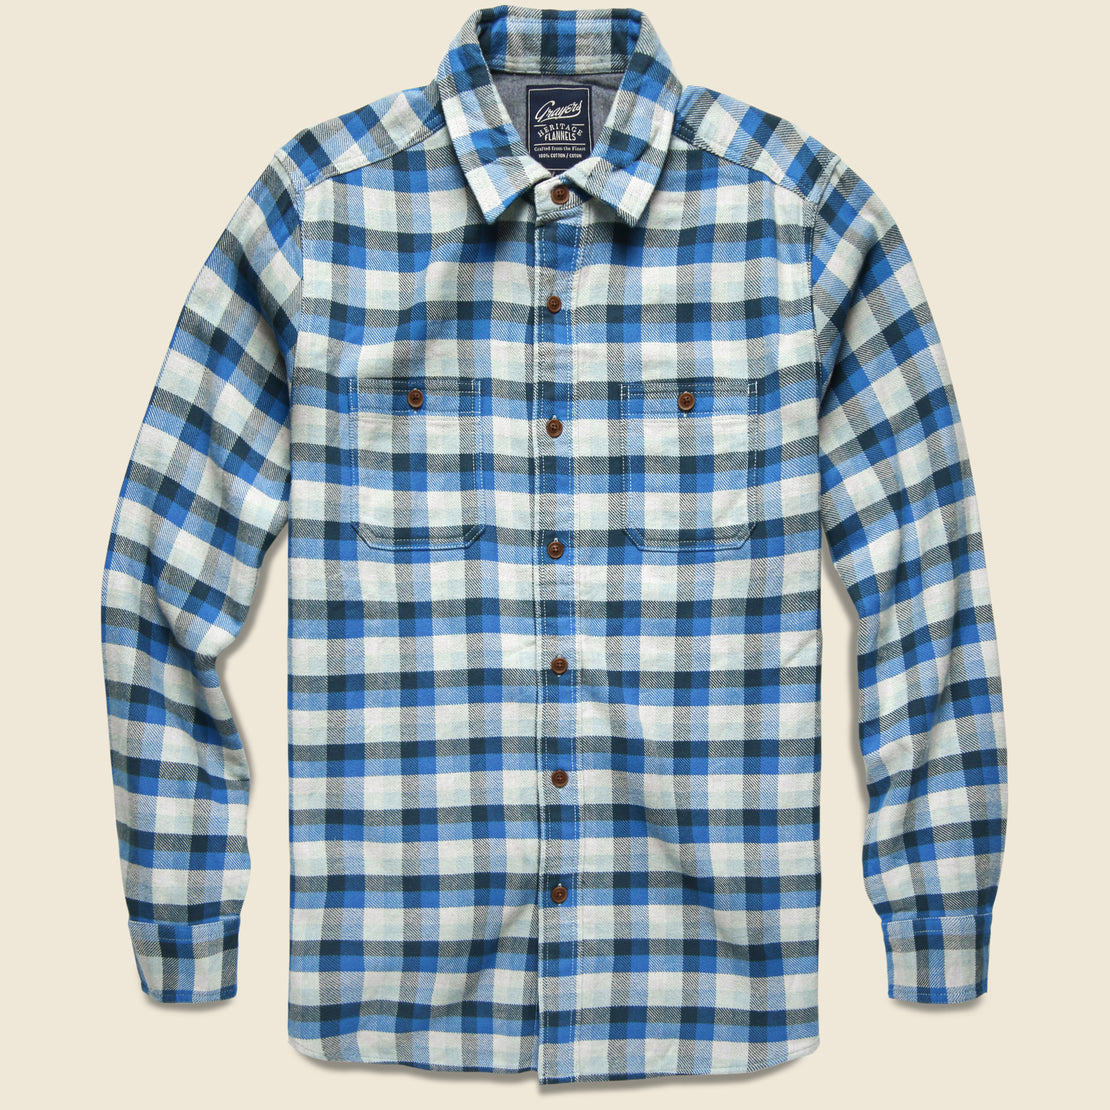 Grayers Gingham Heritage Flannel - Navy/Blue/Grey